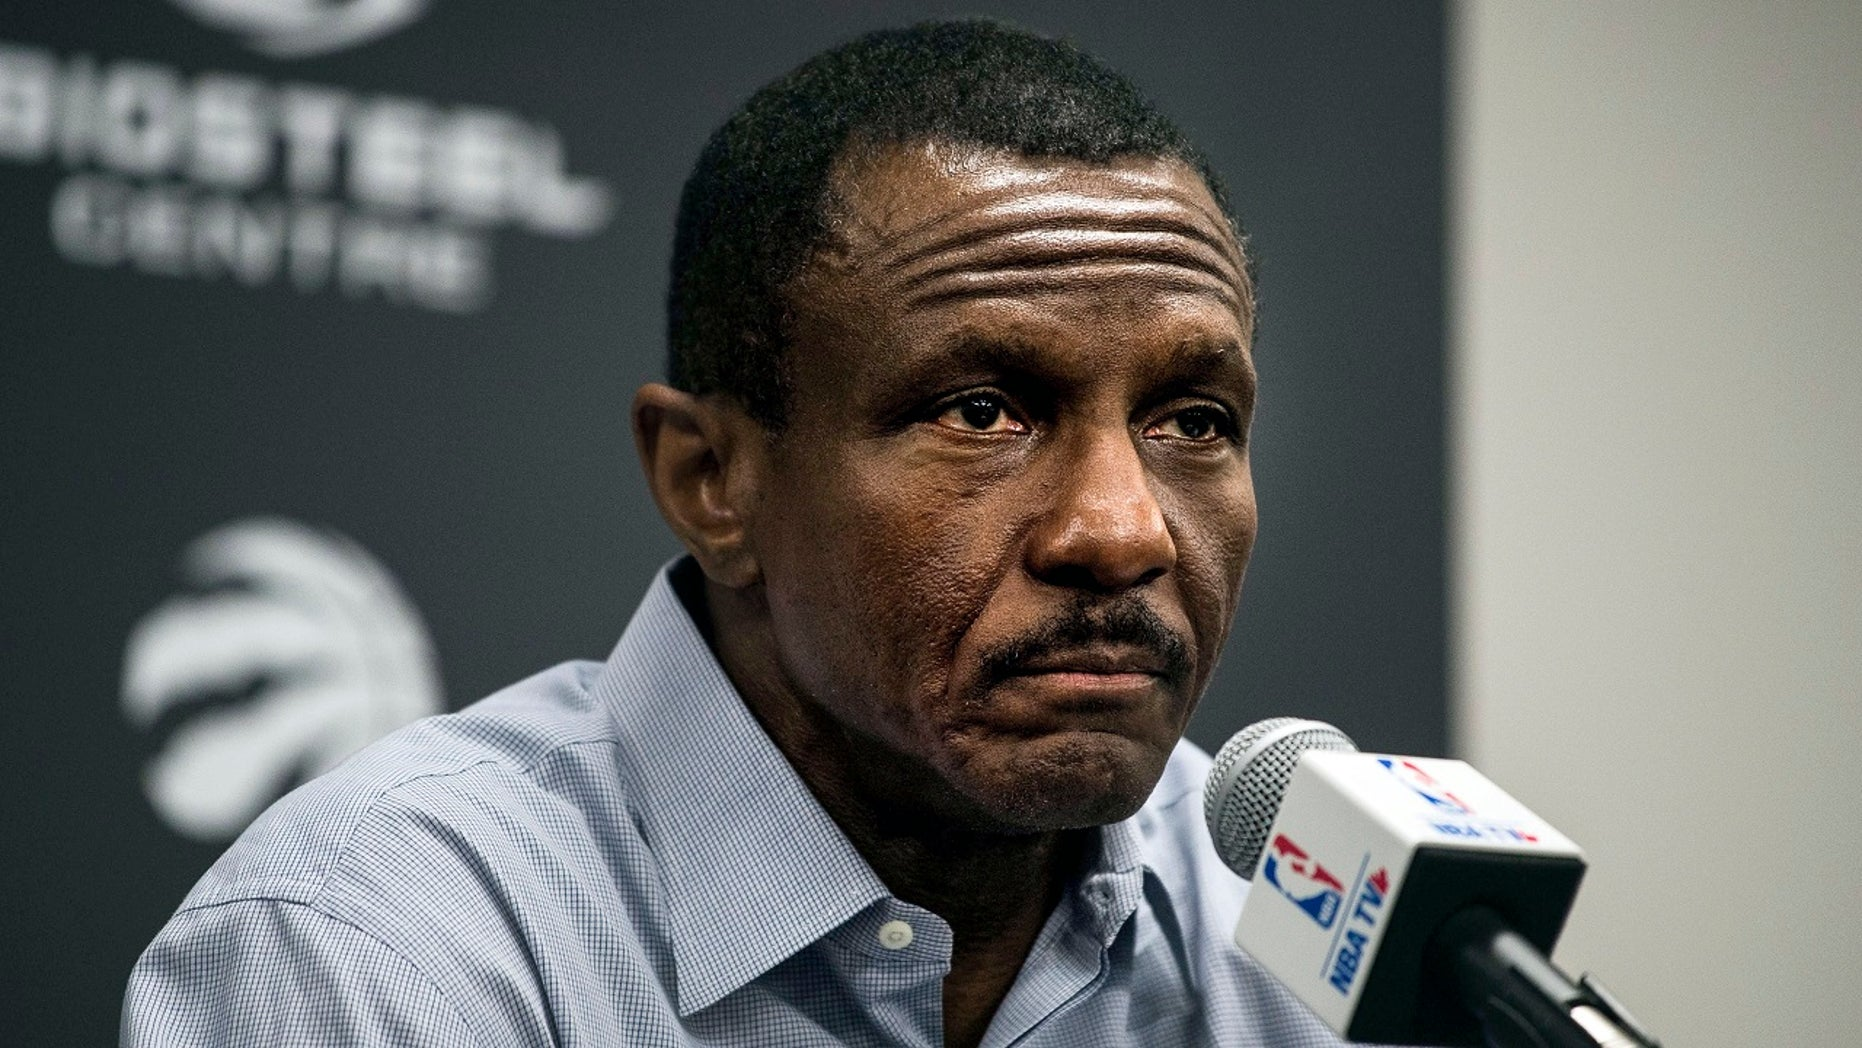 In this Wednesday, May 9, 2018 photo, Toronto Raptors head coach Dwane Casey speaks to media during  an end-of-season NBA basketball media availability in Toronto,. The Raptors have fired Casey on Friday, May 11, 2018, after the team was swept in the playoffs by the Cleveland Cavaliers for second straight season. (Aaron Vincent Elkaim/The Canadian Press via AP, File)